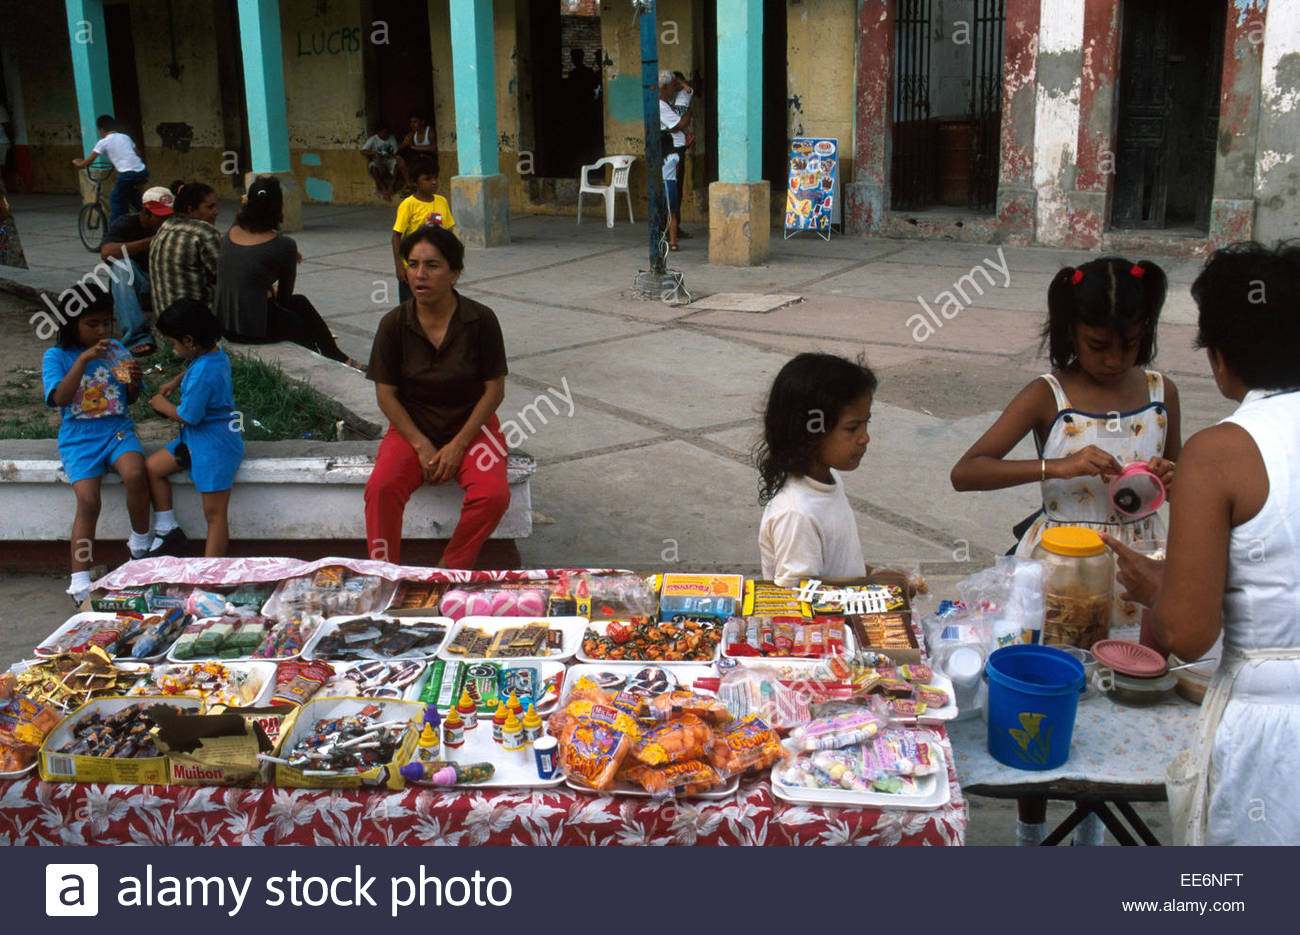 Mexcaltitan, A stall on the village square - Stock Image